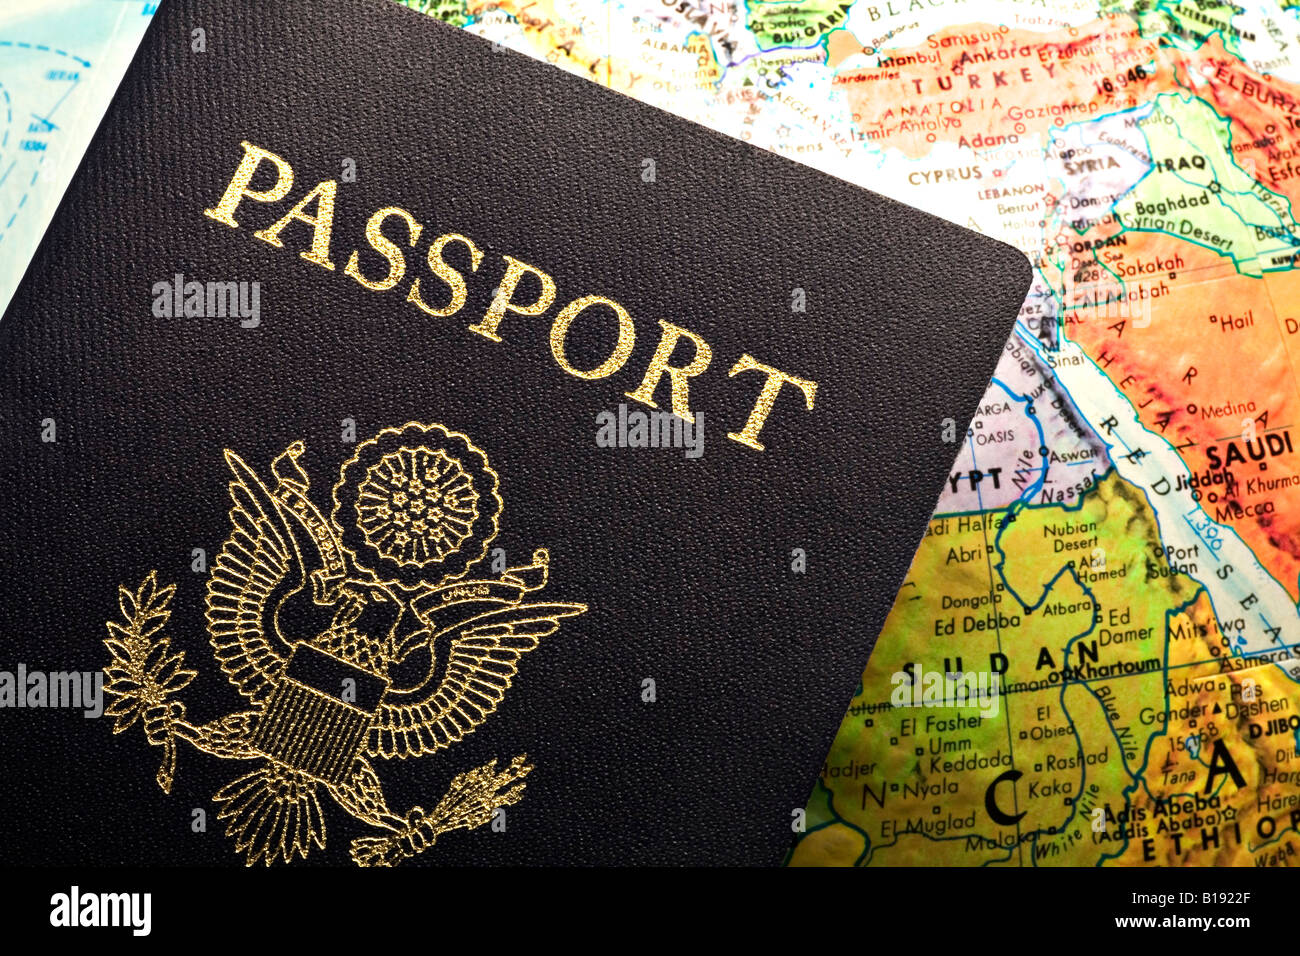 American Passport laid over a map - Stock Image